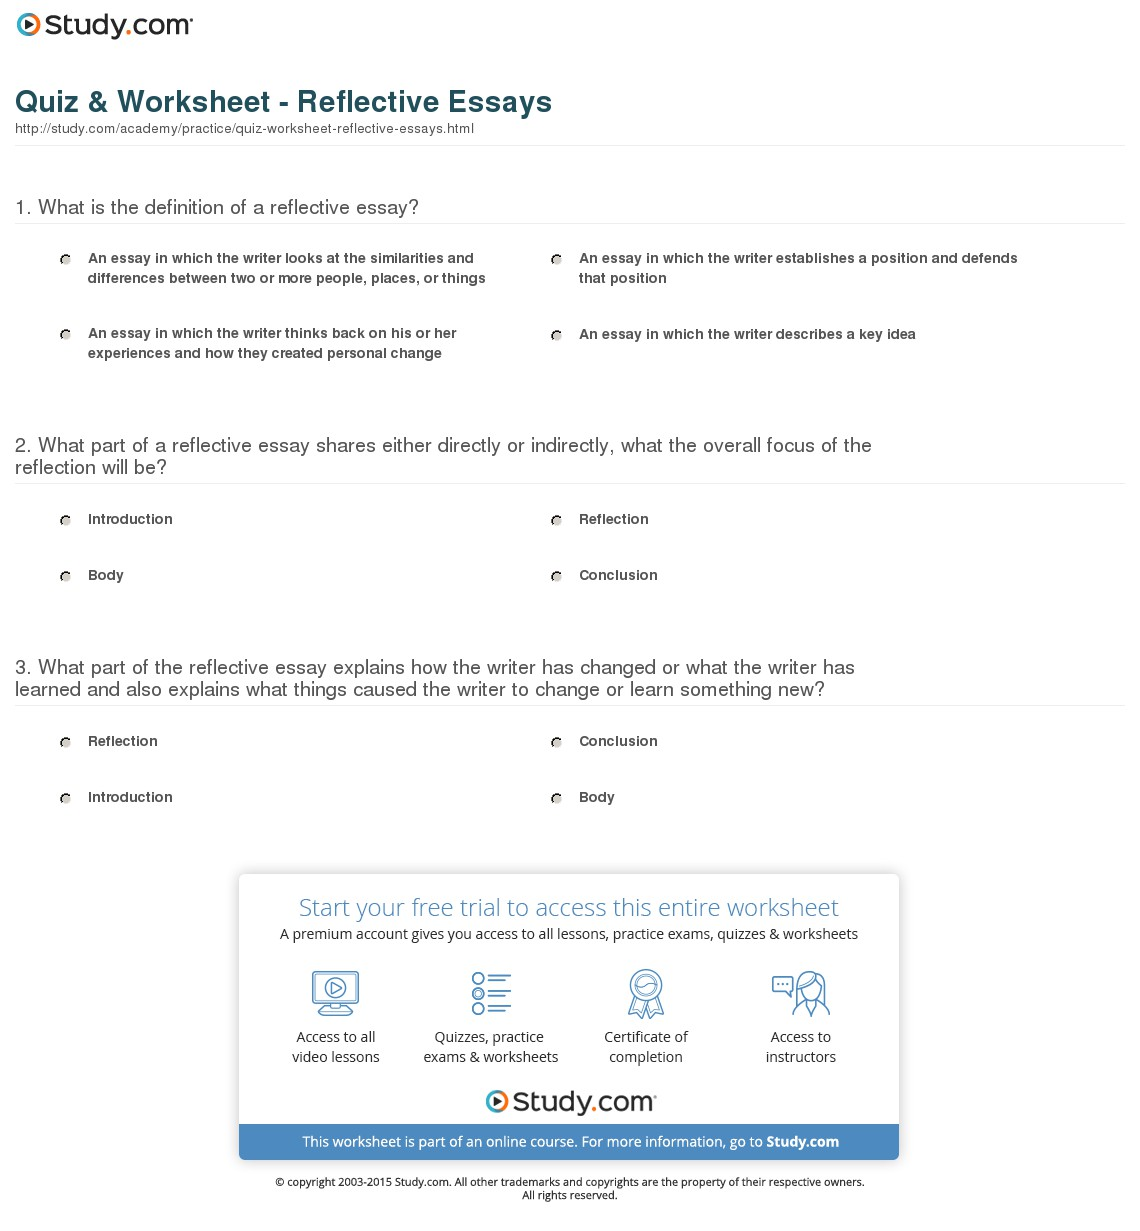 008 Essay Example Quiz Worksheet Reflective Magnificent Essays On English Class Examples Nursing About Life Full